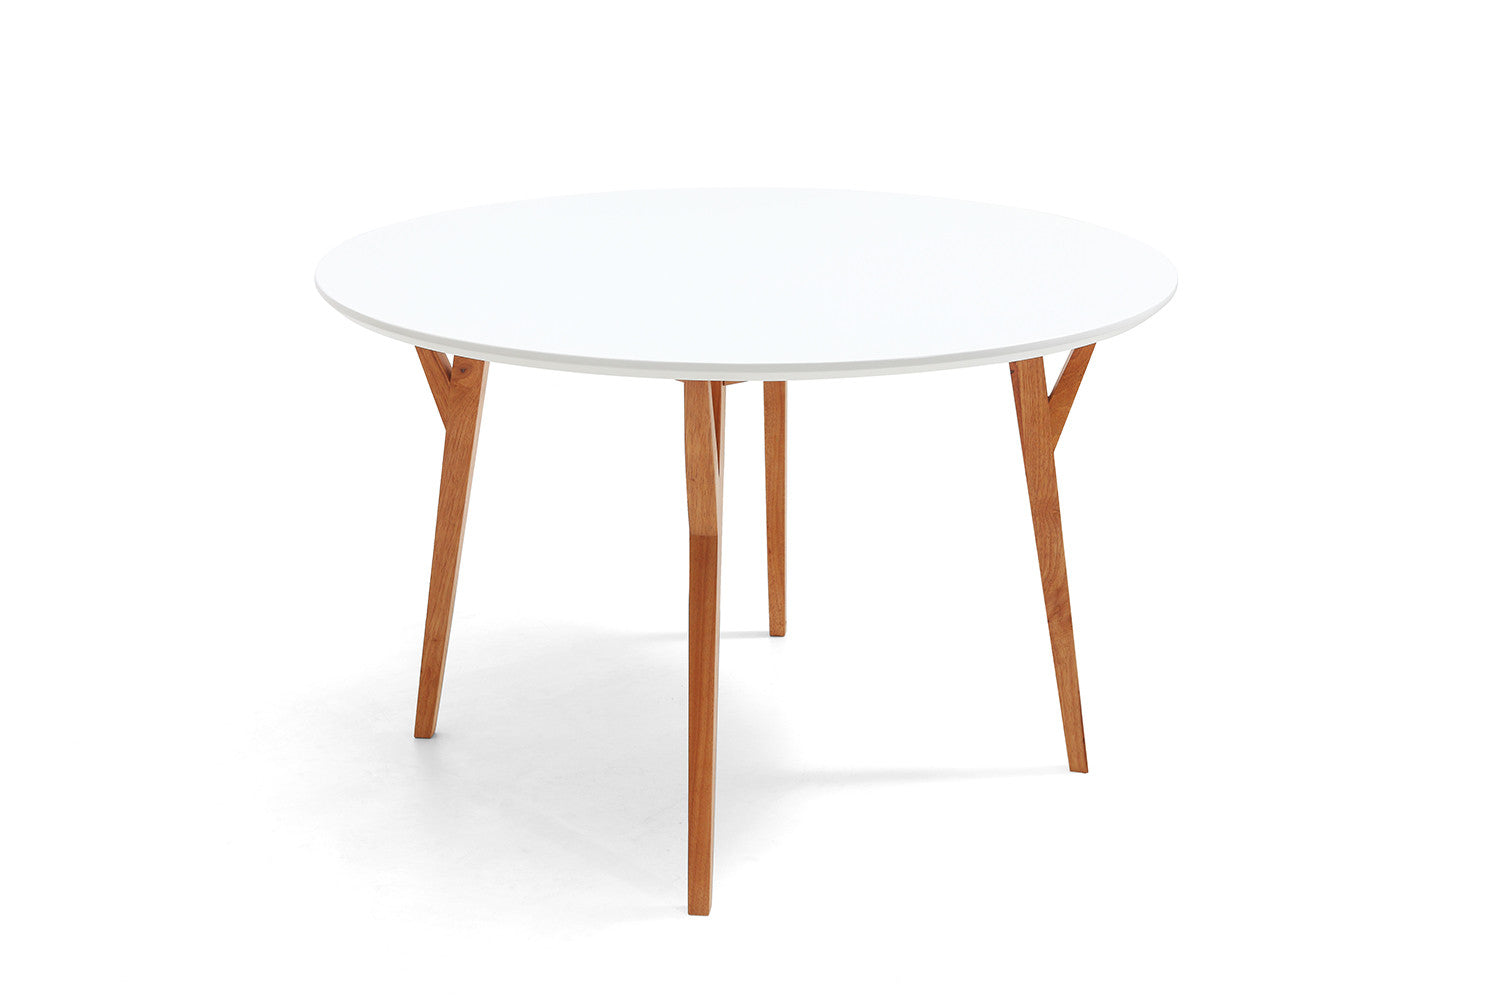 Table de salle manger ronde design scandinave moesa for Table a manger ronde extensible